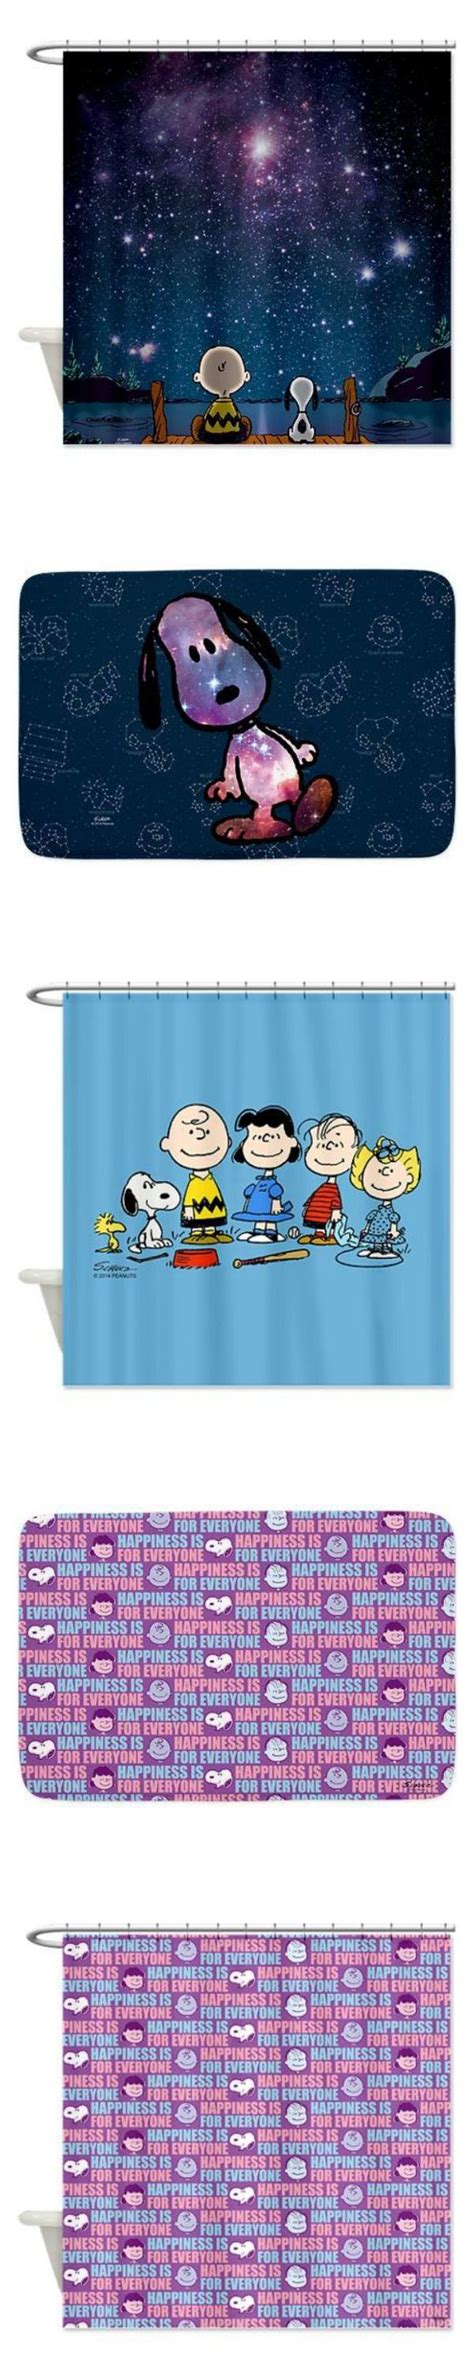 snoopy bathroom decor peanuts for the bathroom bathrooms decor helpful hints